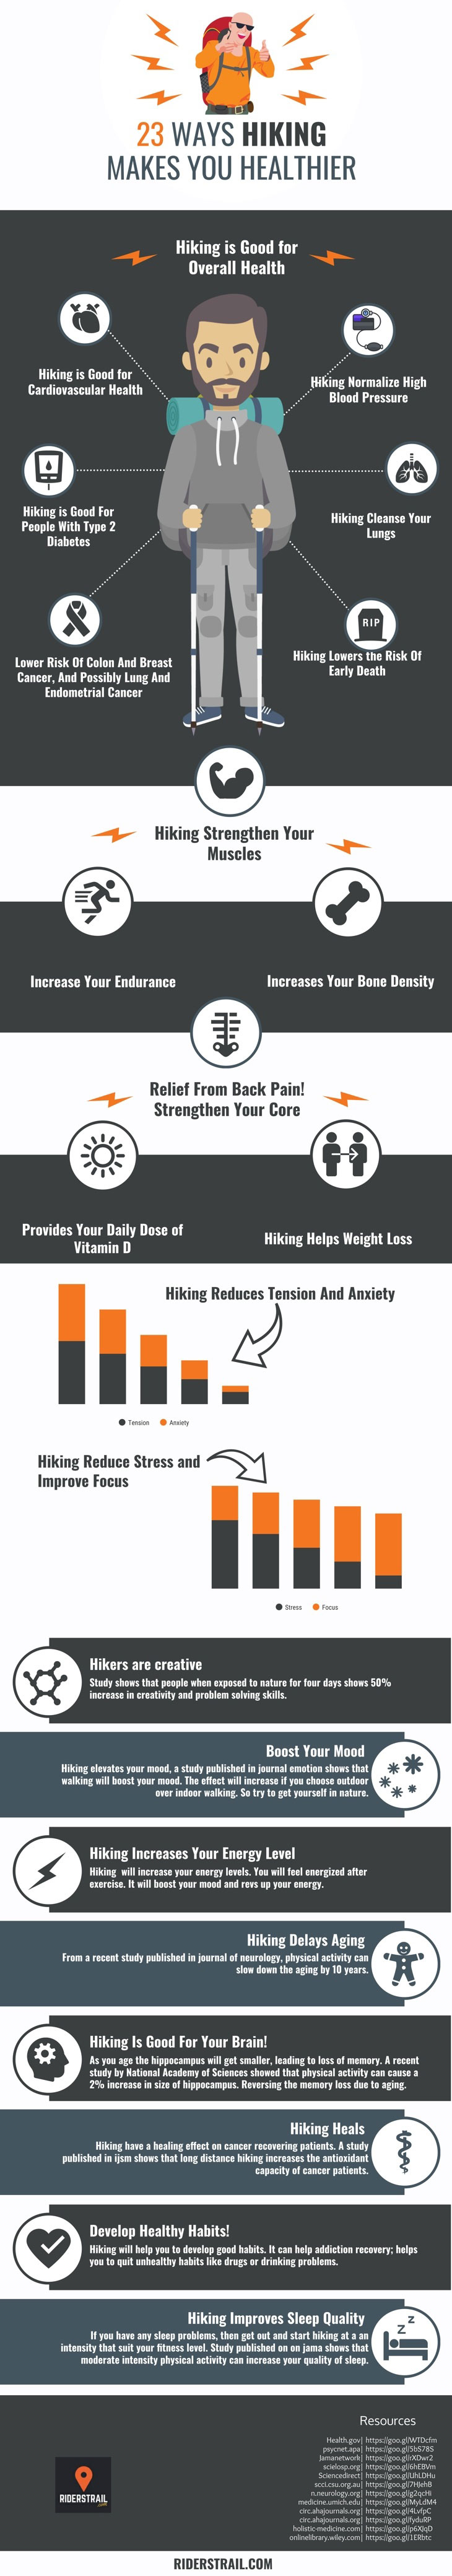 How Hiking Makes You Healthier